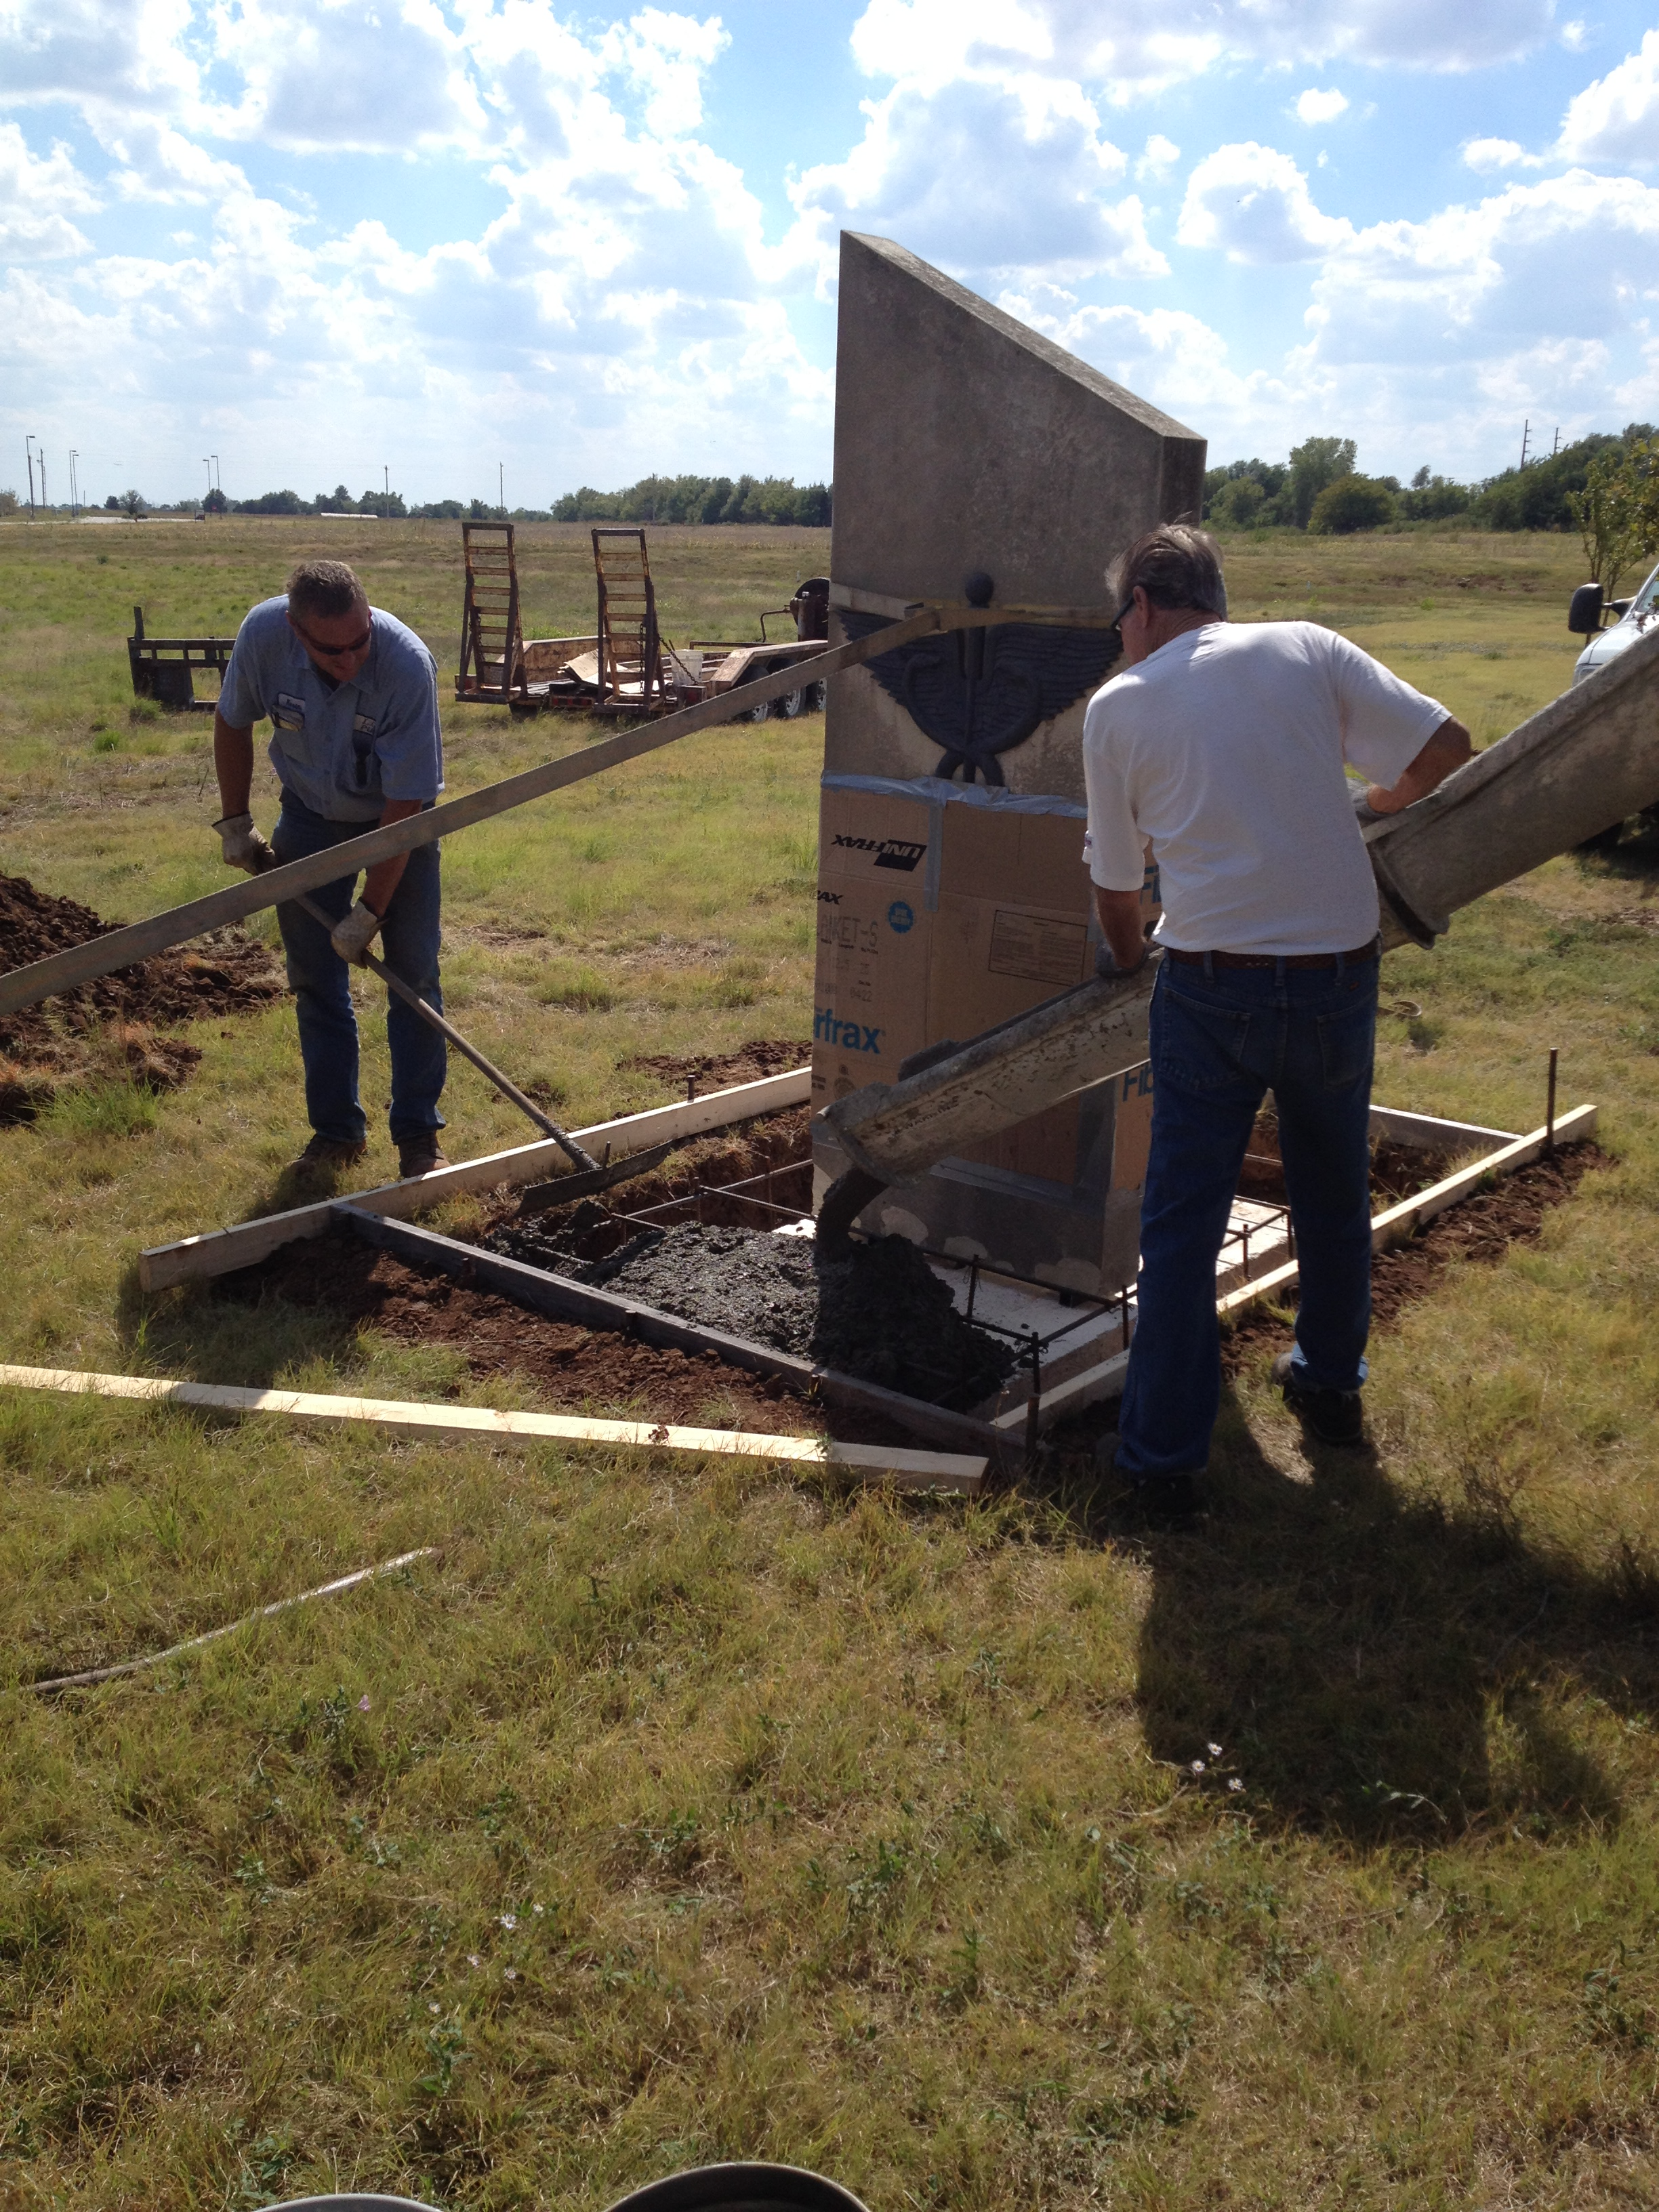 Pictured: Kevin Pike(left) and Rick Crull of LG Pike Construction complete the base for the caduceus stone which was recently relocated from the former site of Memorial Hospital to South Central Kansas Medical Center.